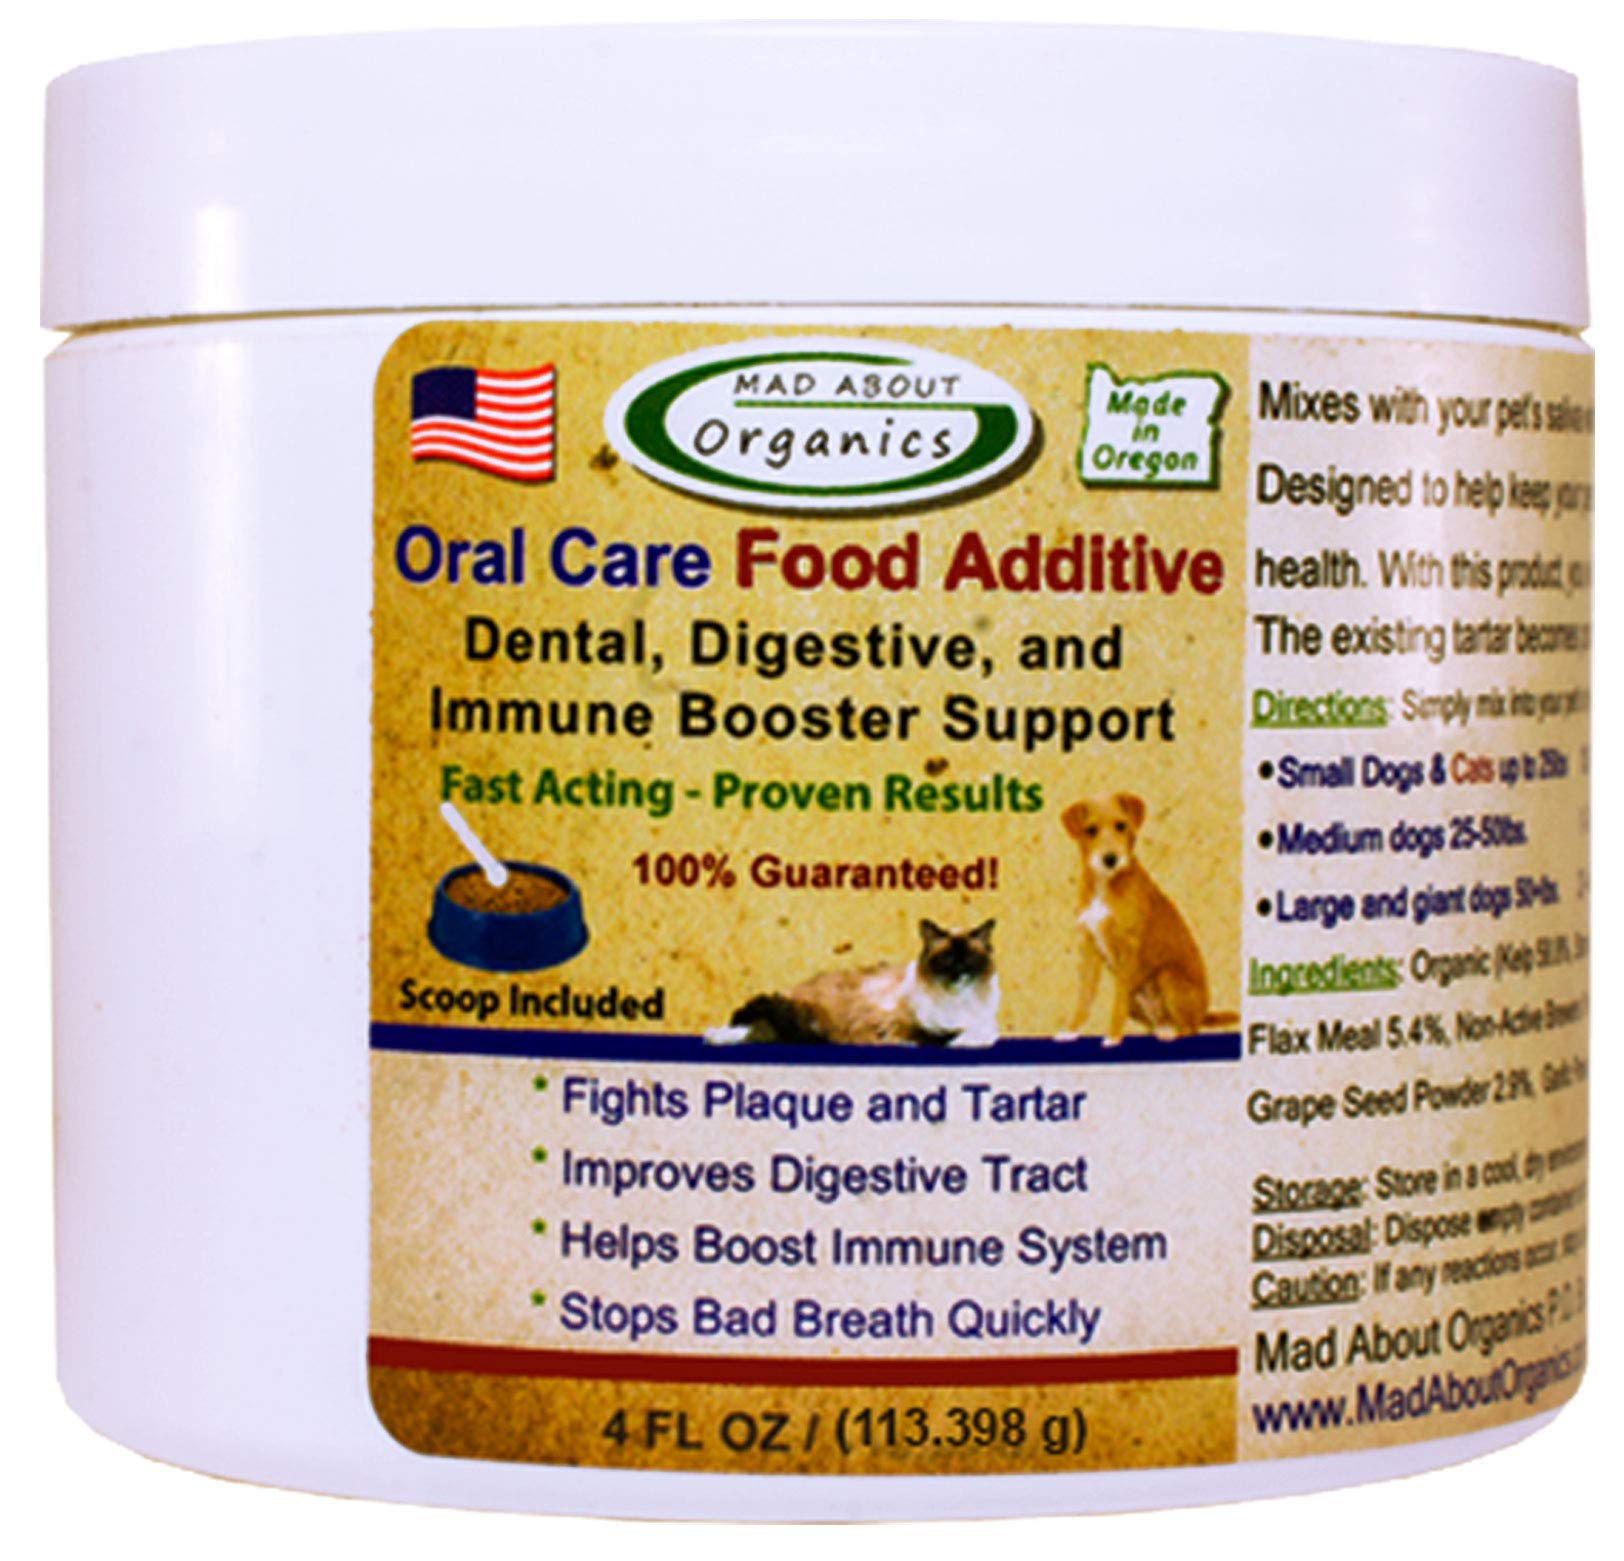 Mad About Organics All Natural Dog and Cat Oral Care Food Additive 4 ounces